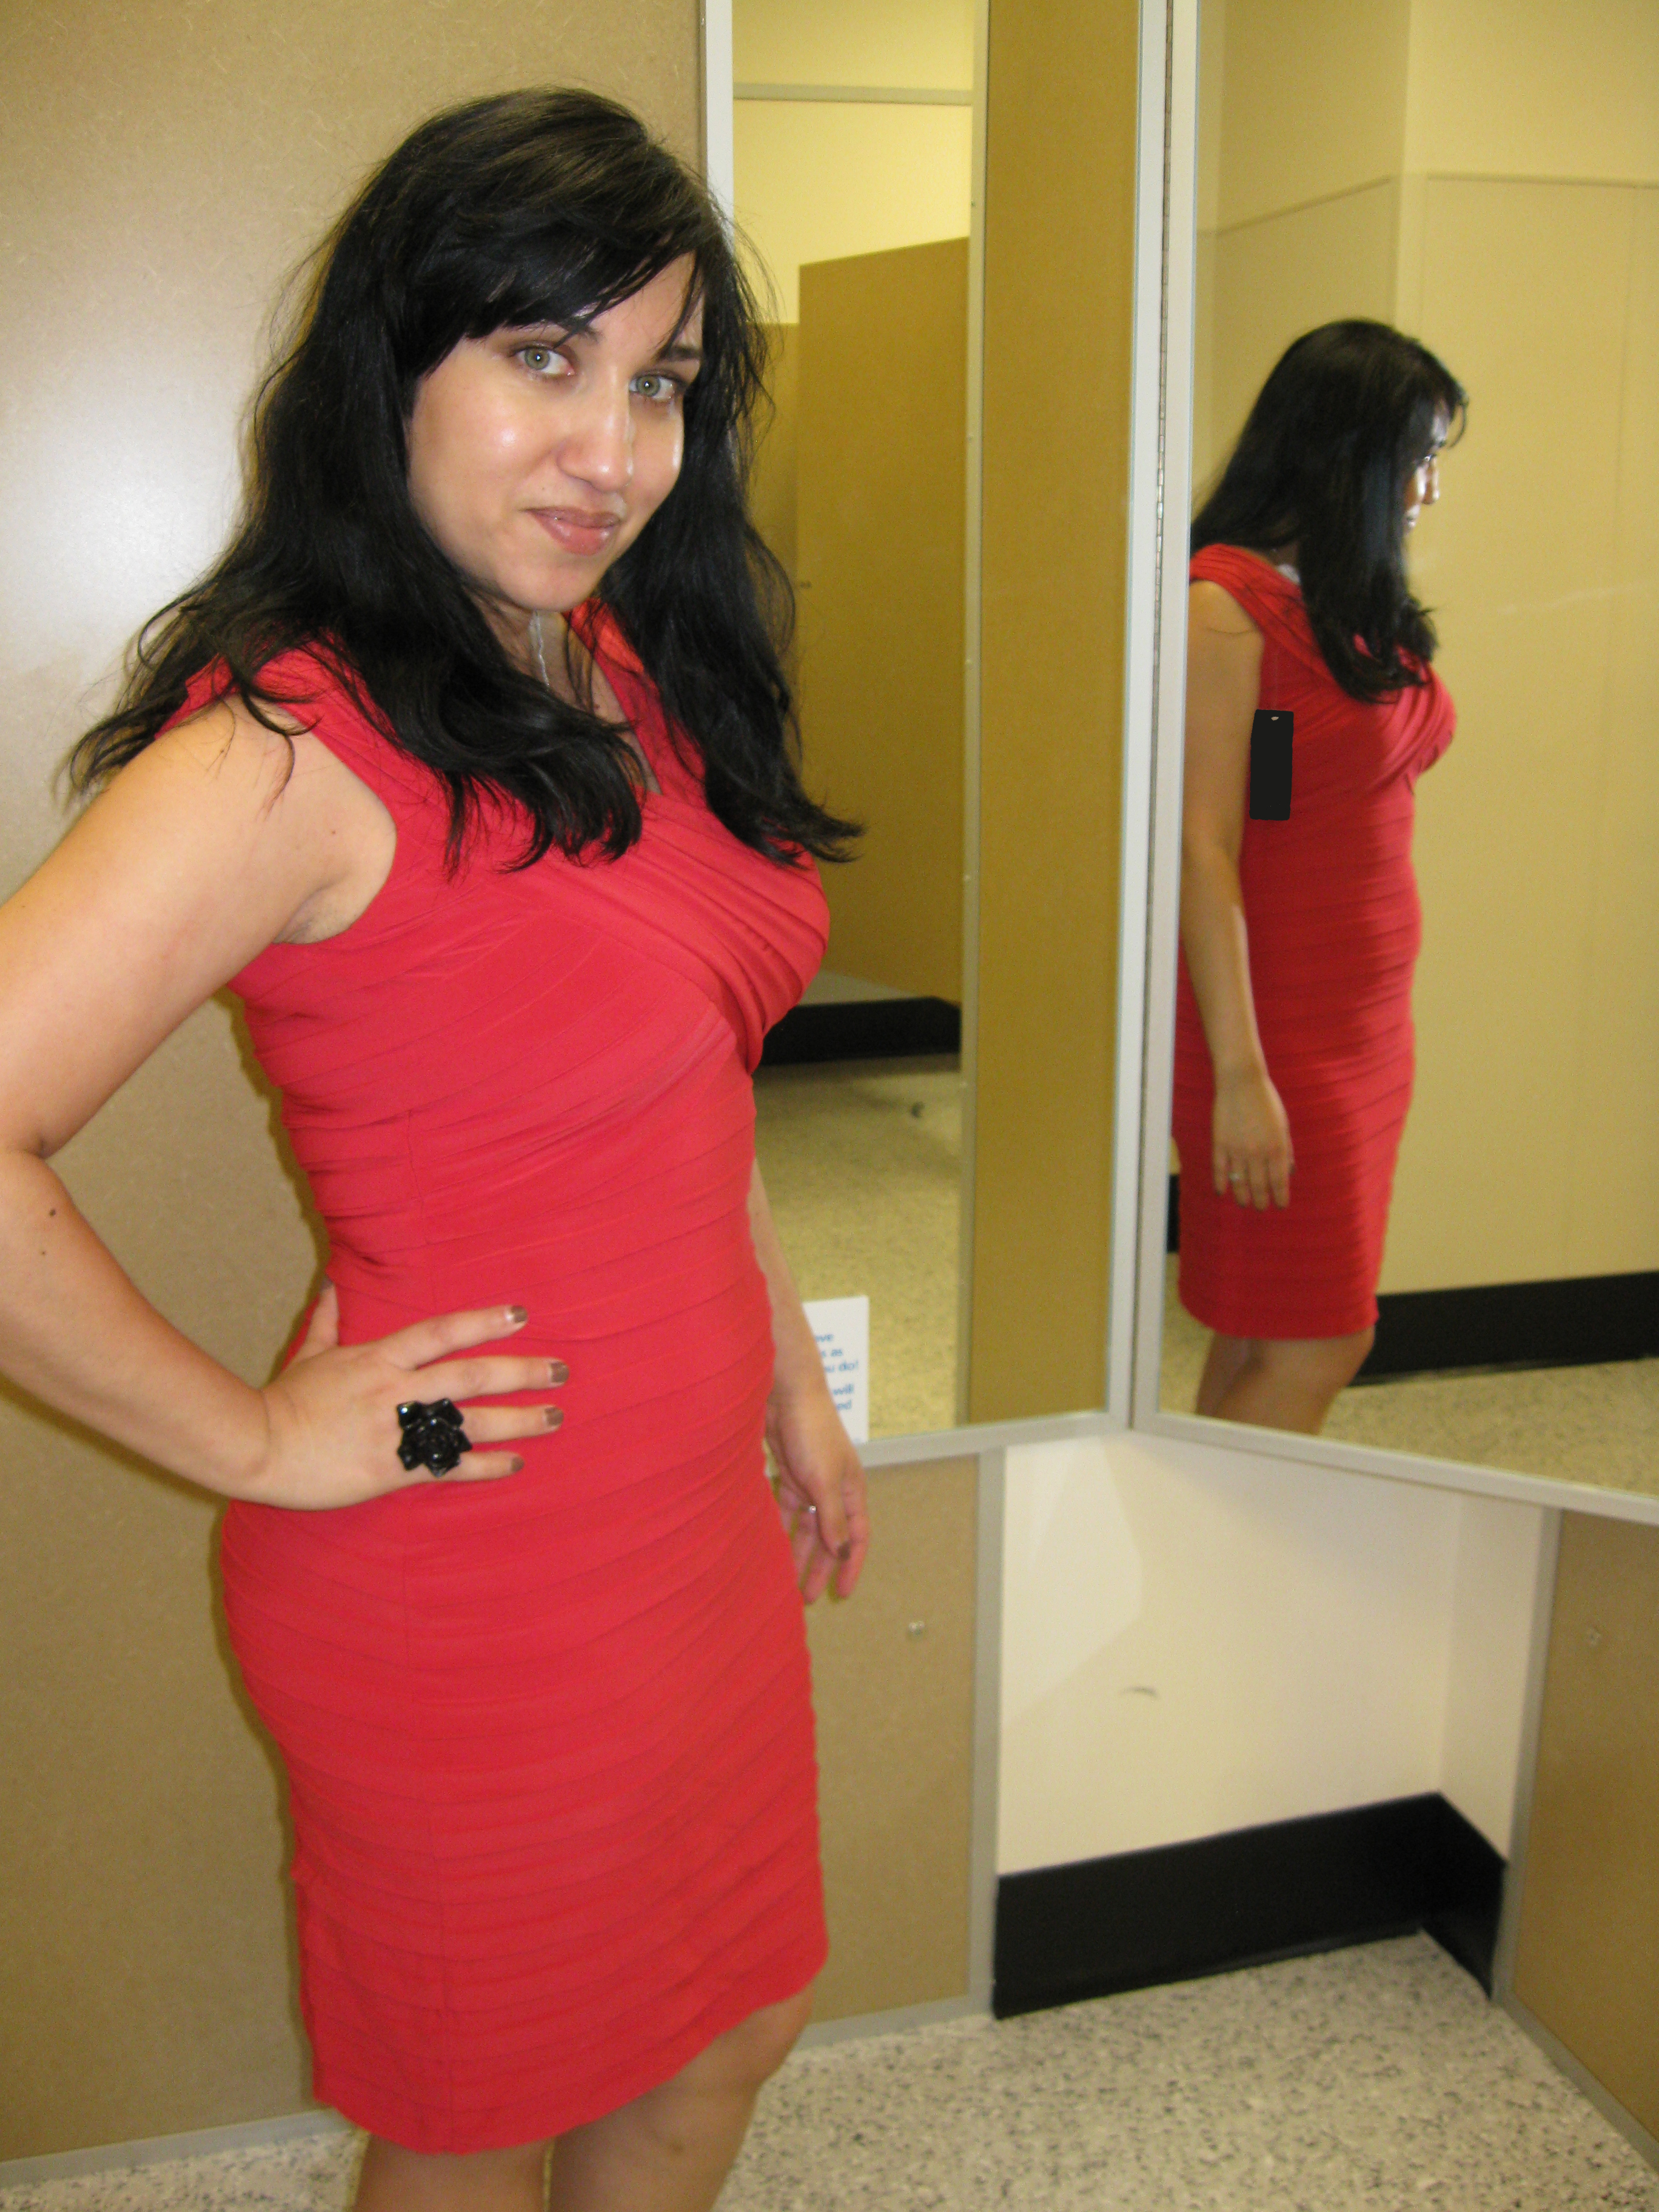 87 reviews of Ross Dress for Less